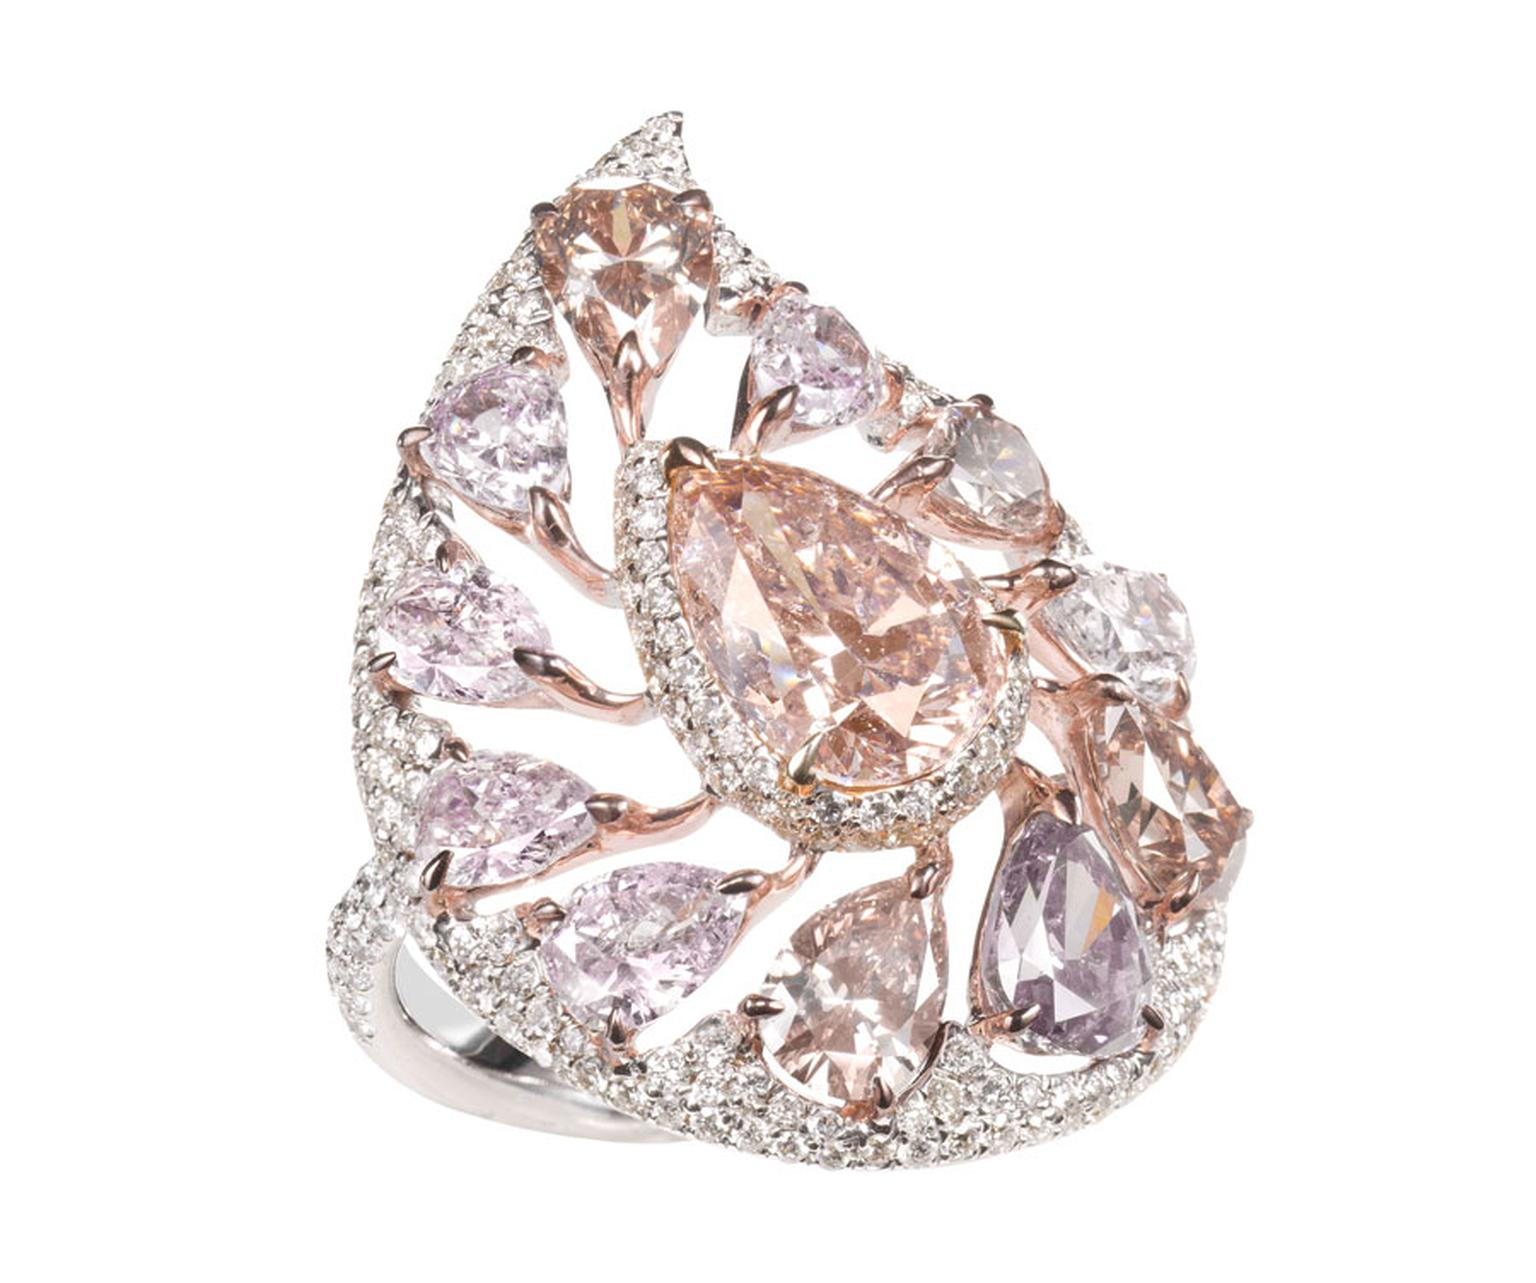 MPL-2013--BOGH-ART-fancy-intense-orangy-pink-diamond-ring